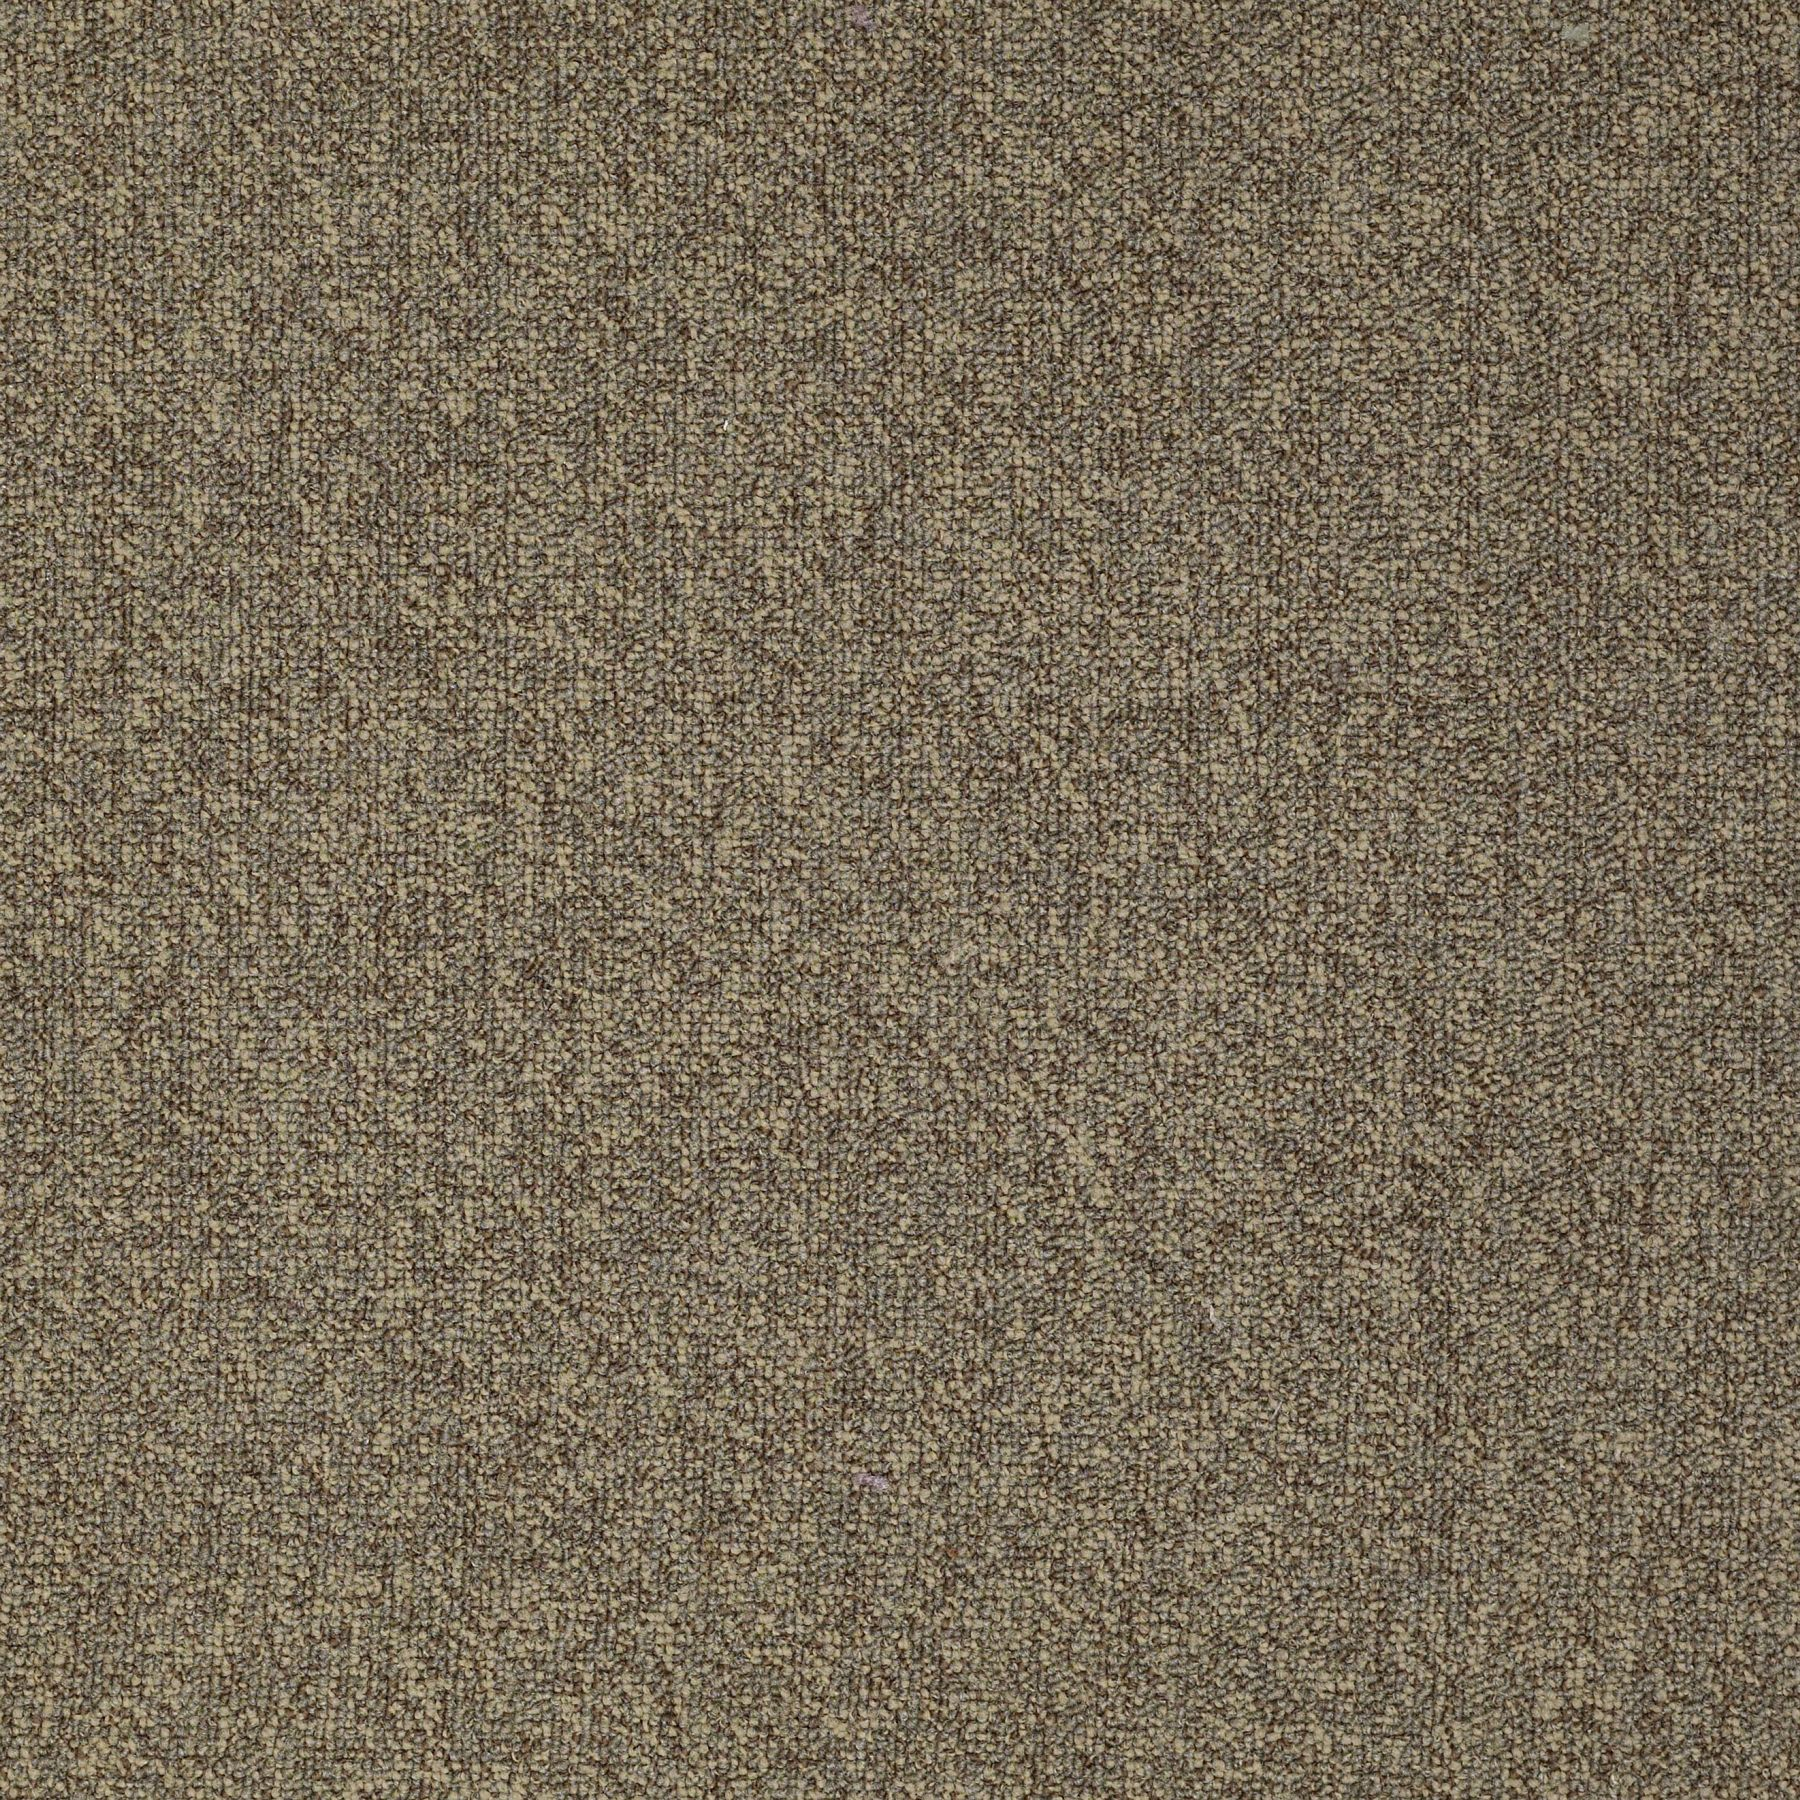 54675 Scoreboard II 28 Color 00110 Play Off Commercial Carpet